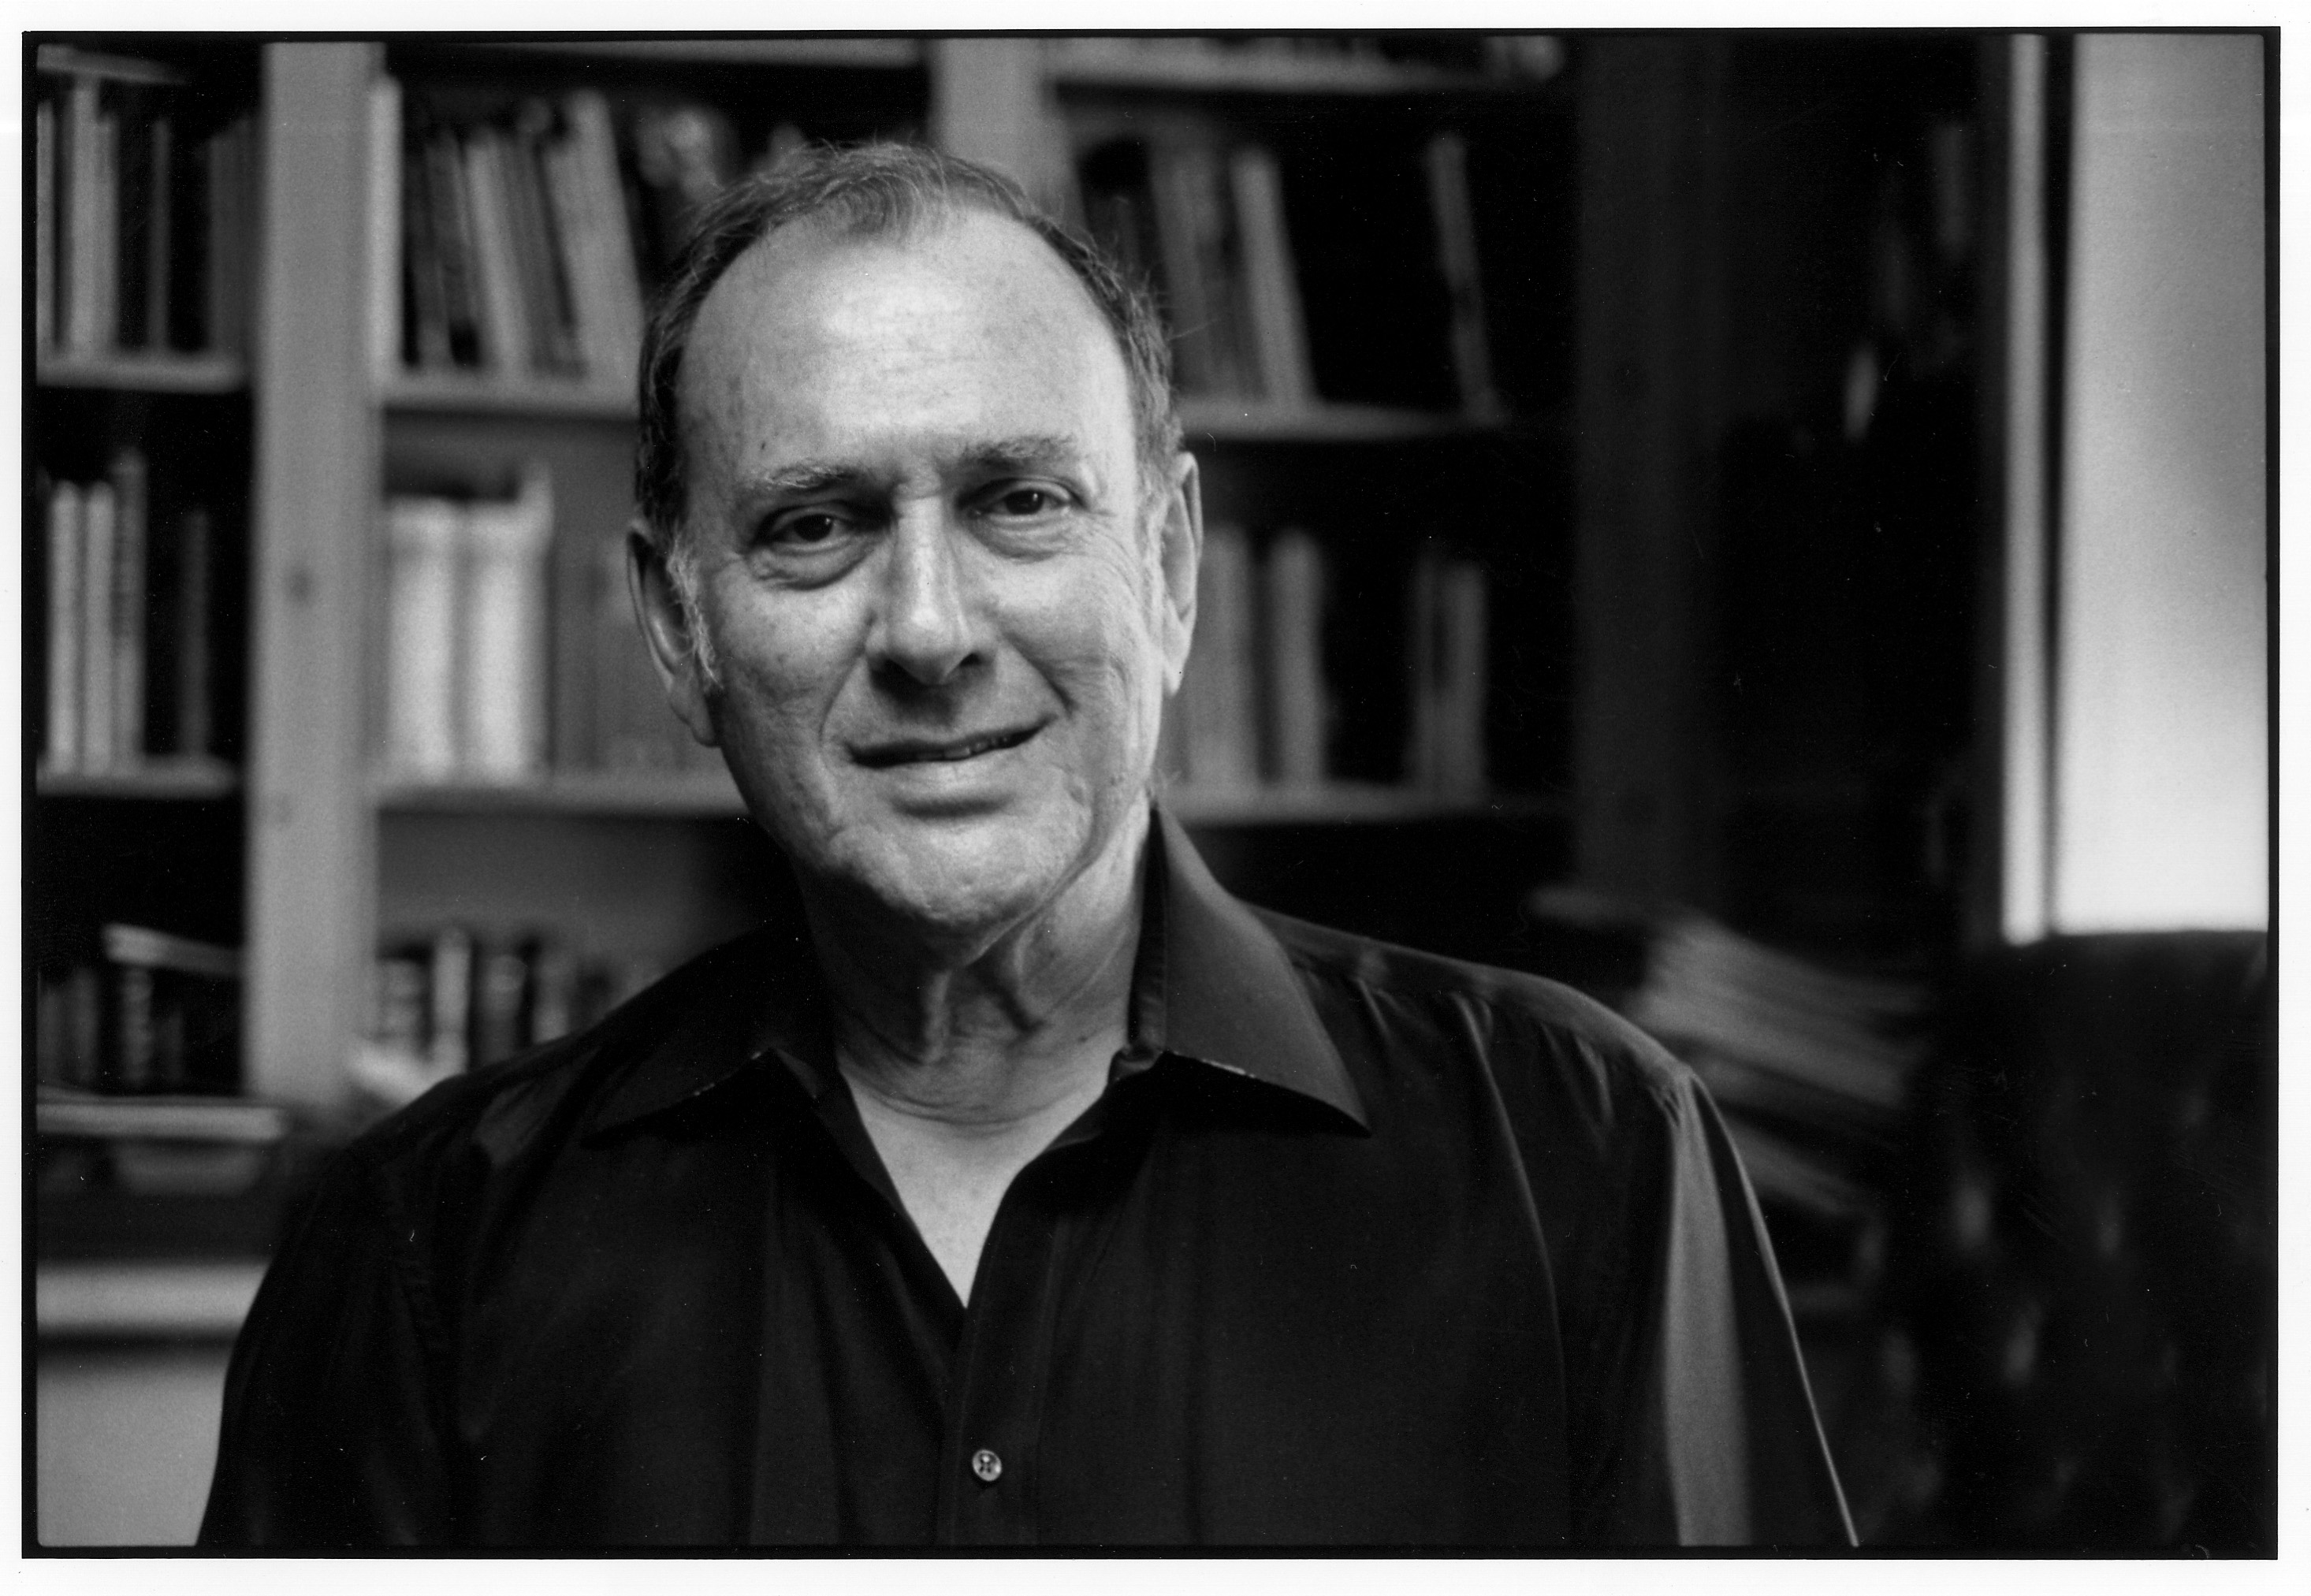 Later photograph of Harold Pinter taken by Martin Rosenbaum